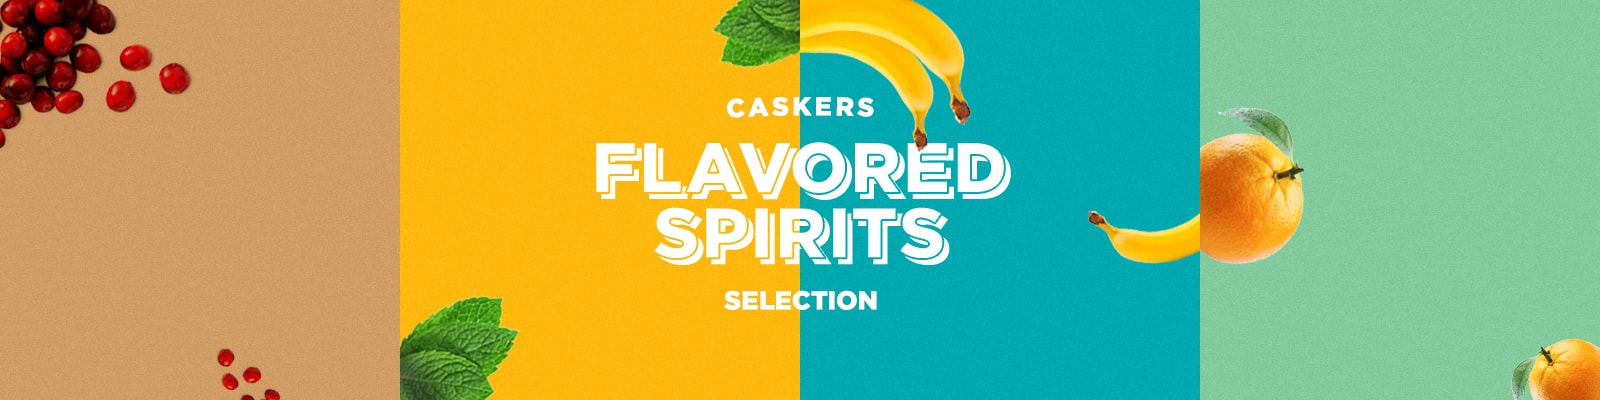 Flavored Spirits Selection